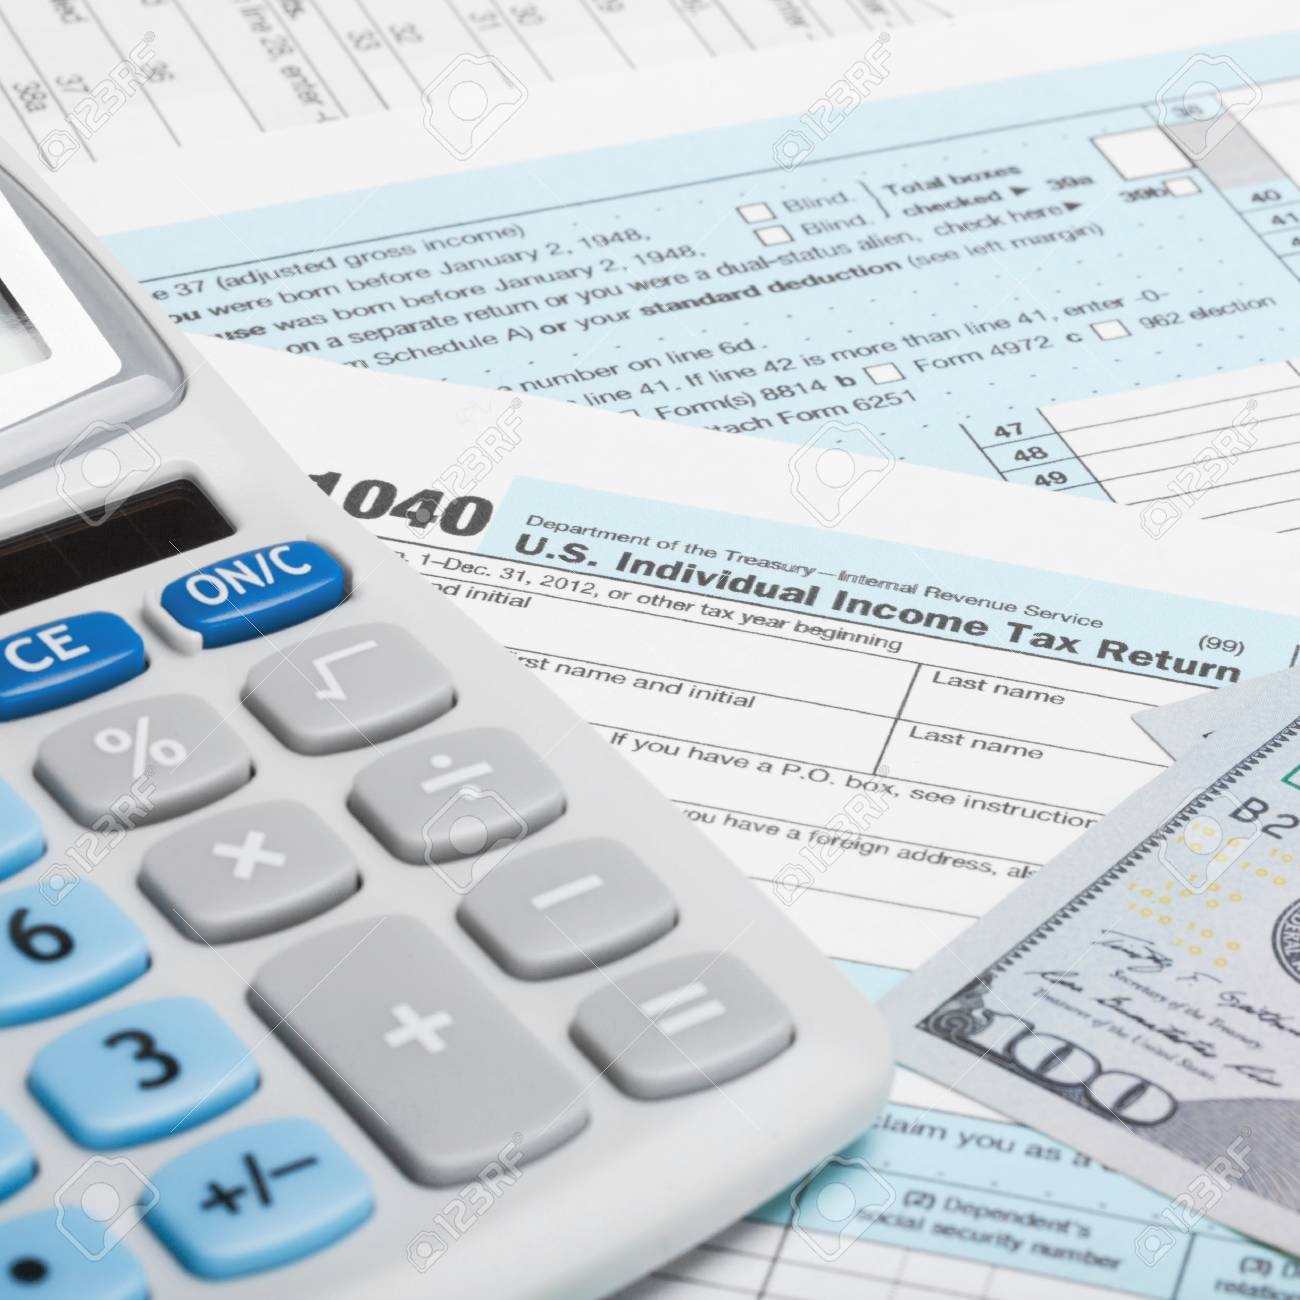 form 1040 calculator  US Tax Form 6 with calculator and US dollars